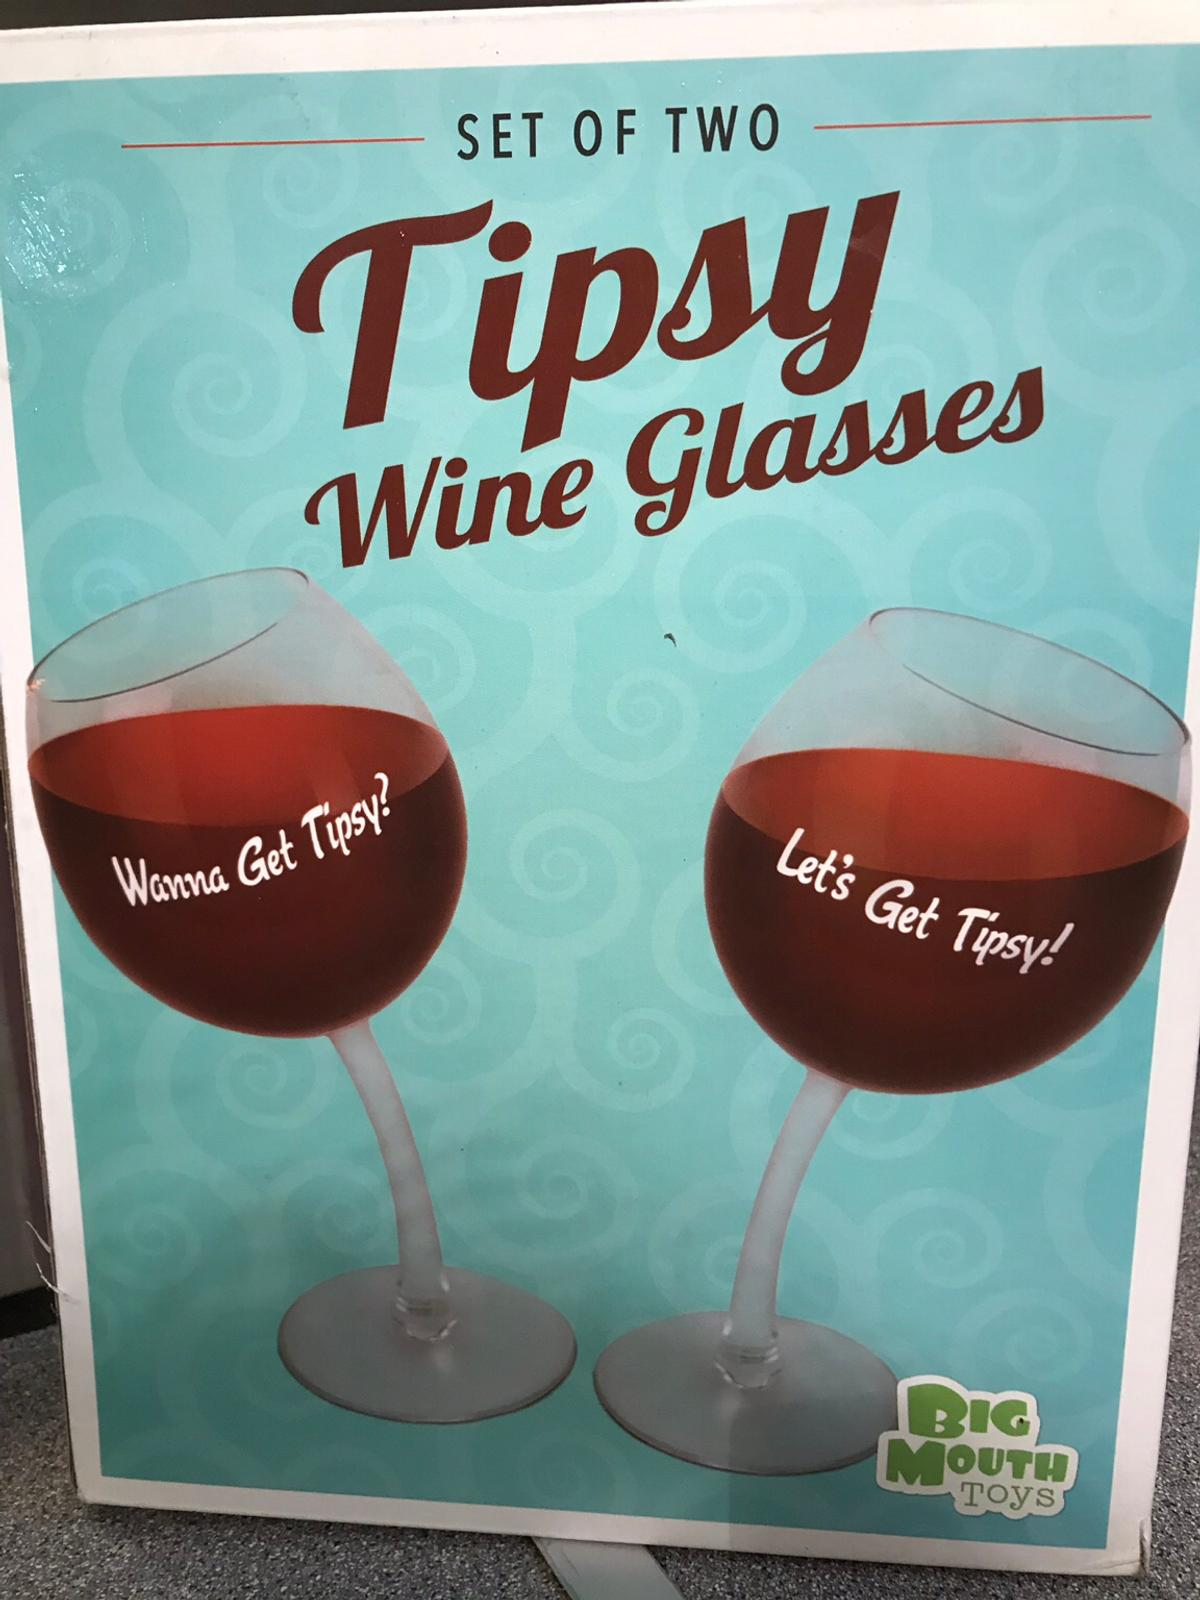 Funny wine glasses, with curved stems. Used but in excellent condition and in original box.